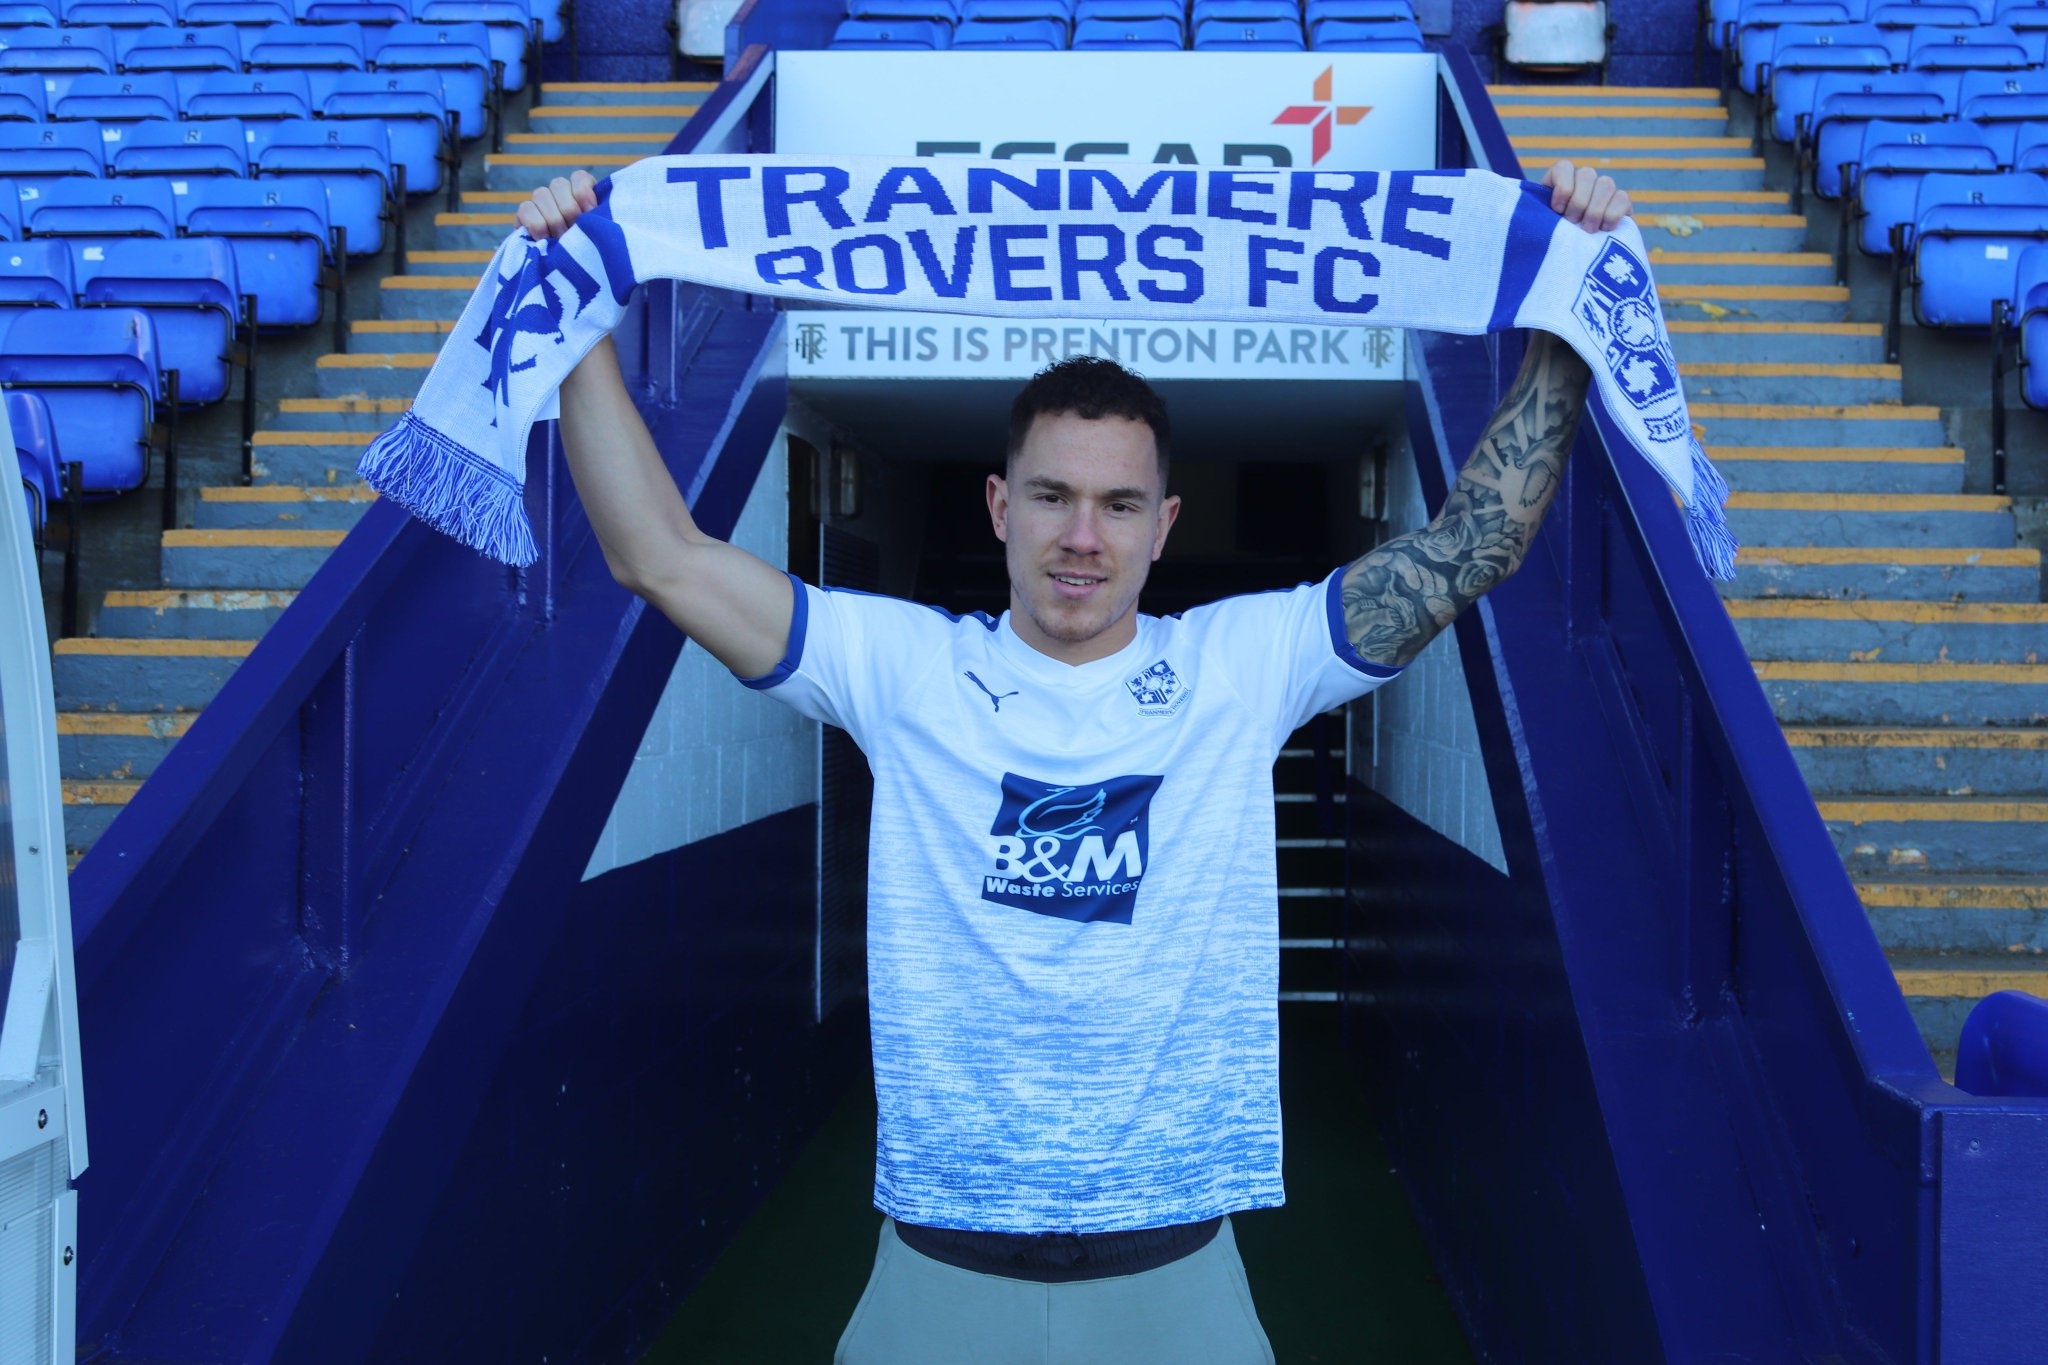 Kieron Morris Joins Tranmere Rovers on Loan Until the End of the Season